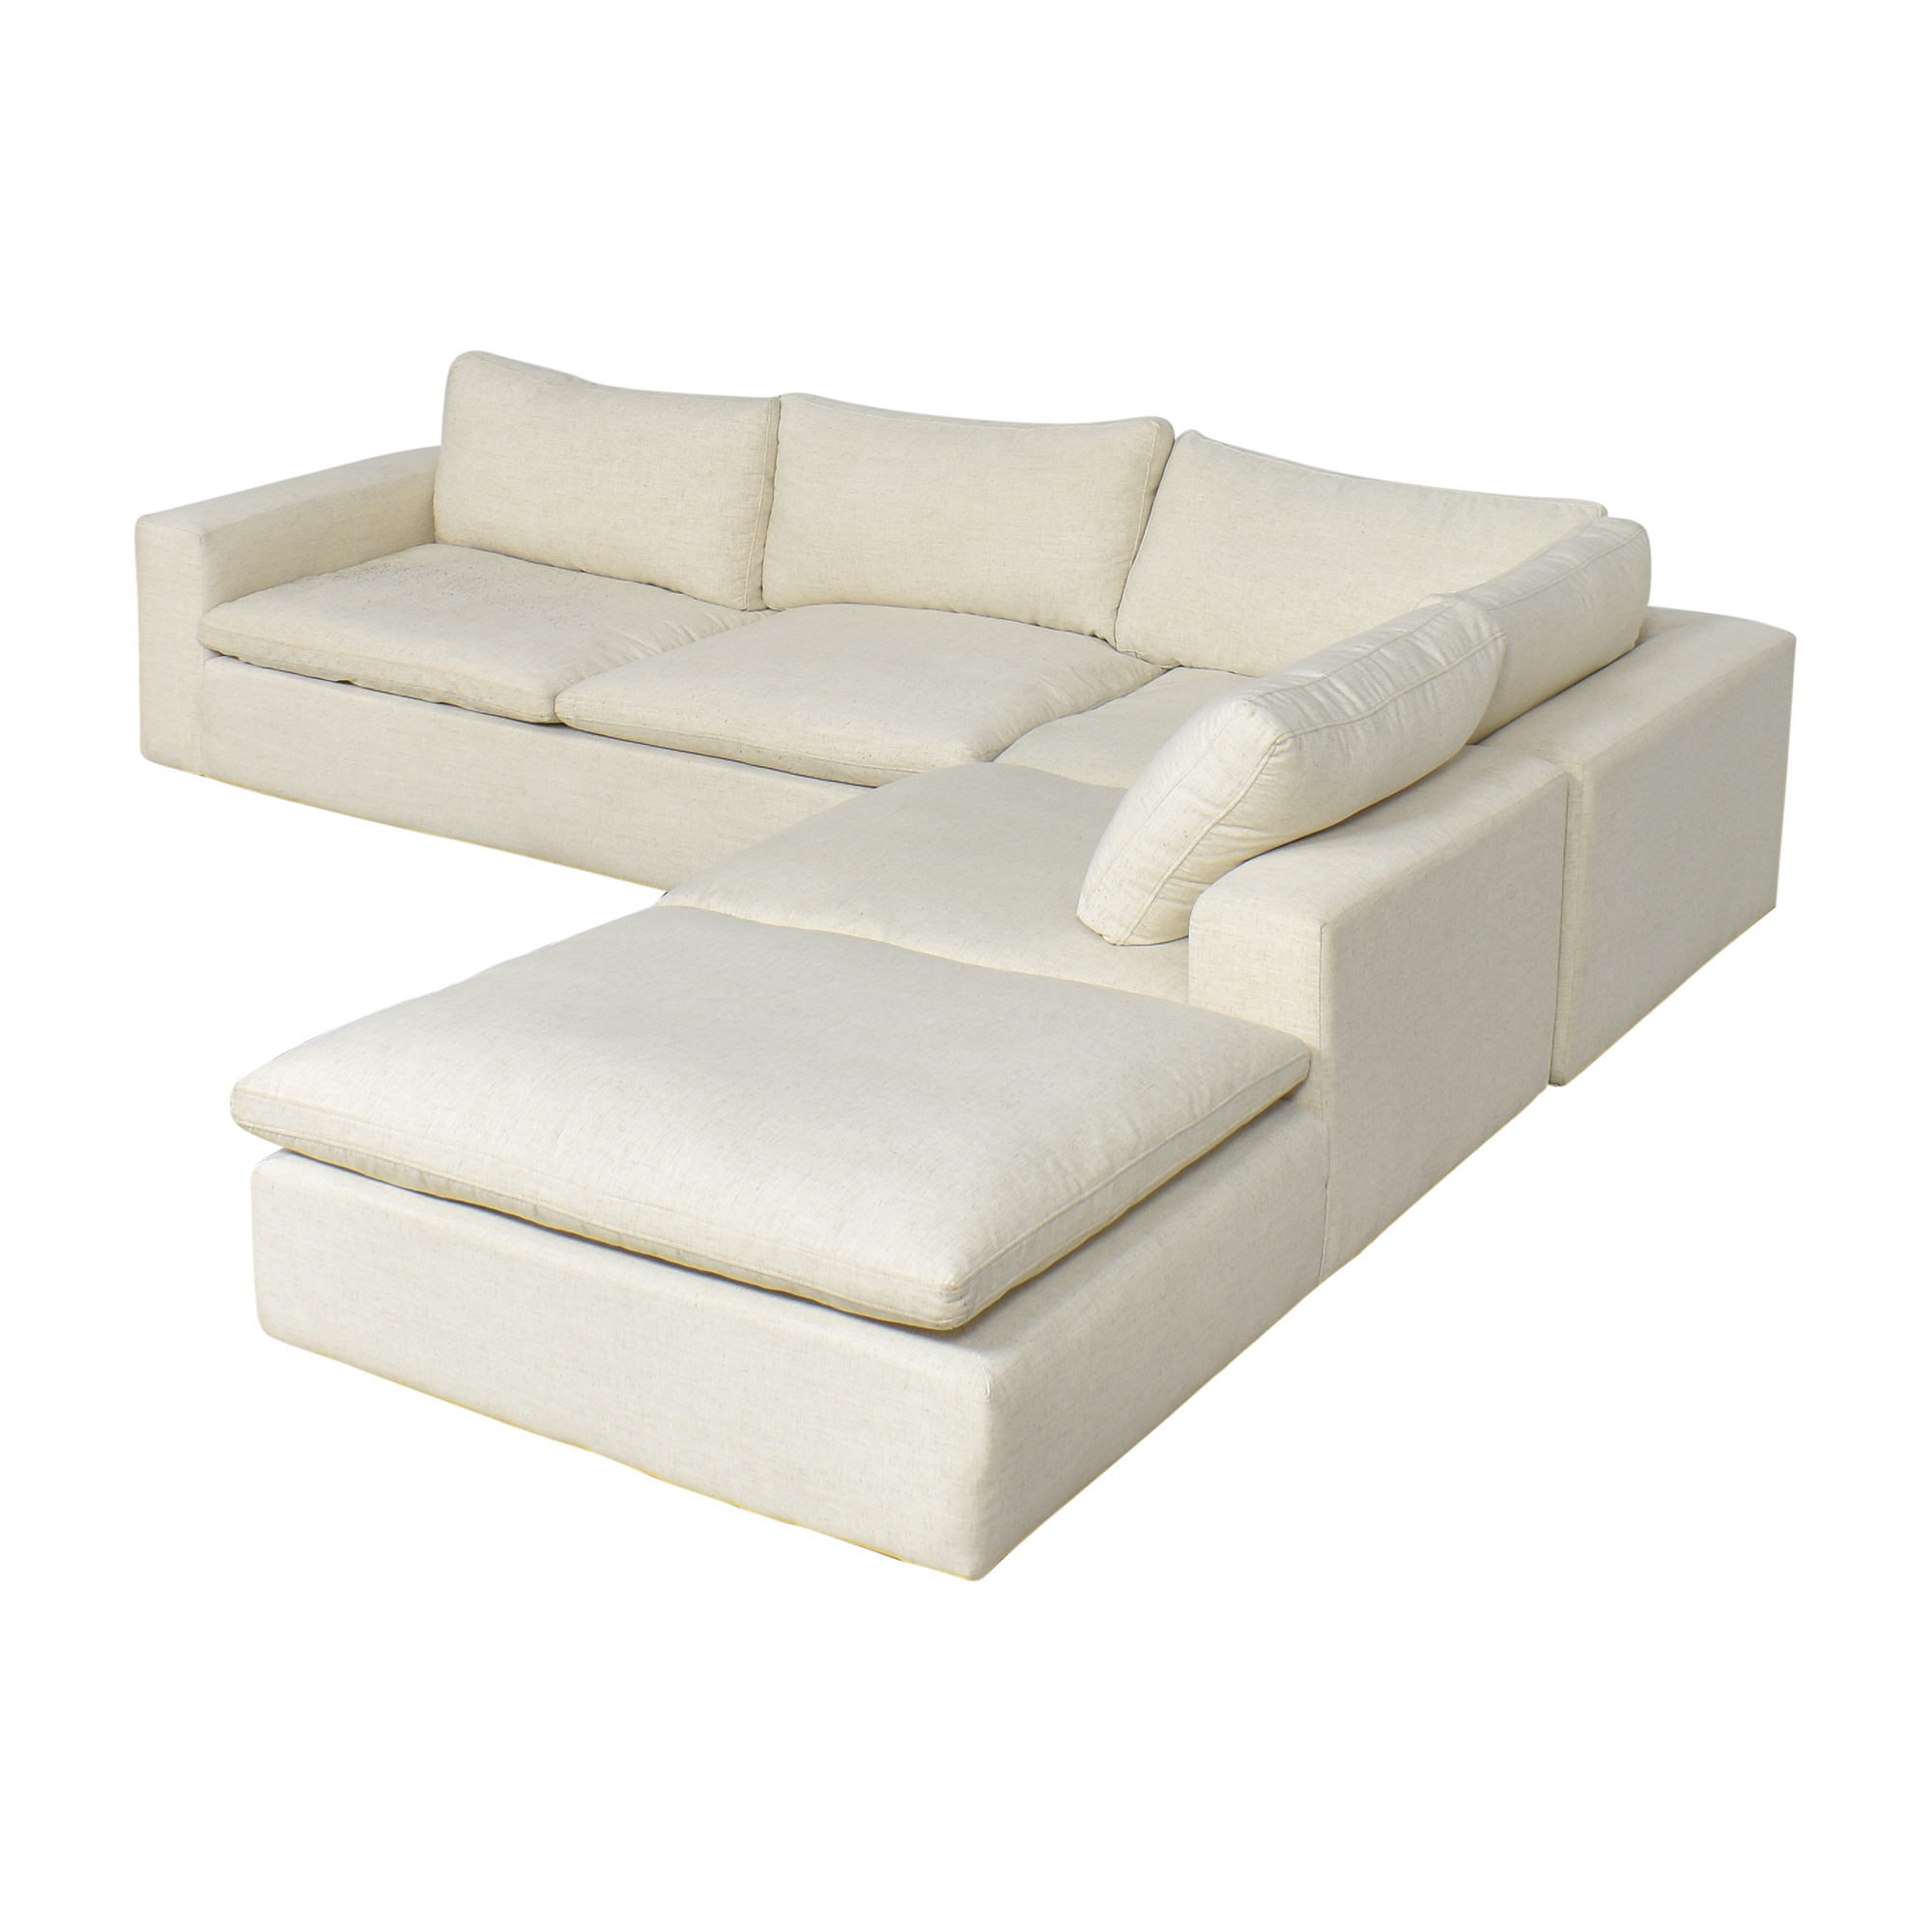 Living Spaces Living Spaces Utopia Three Piece Sectional Sofa used